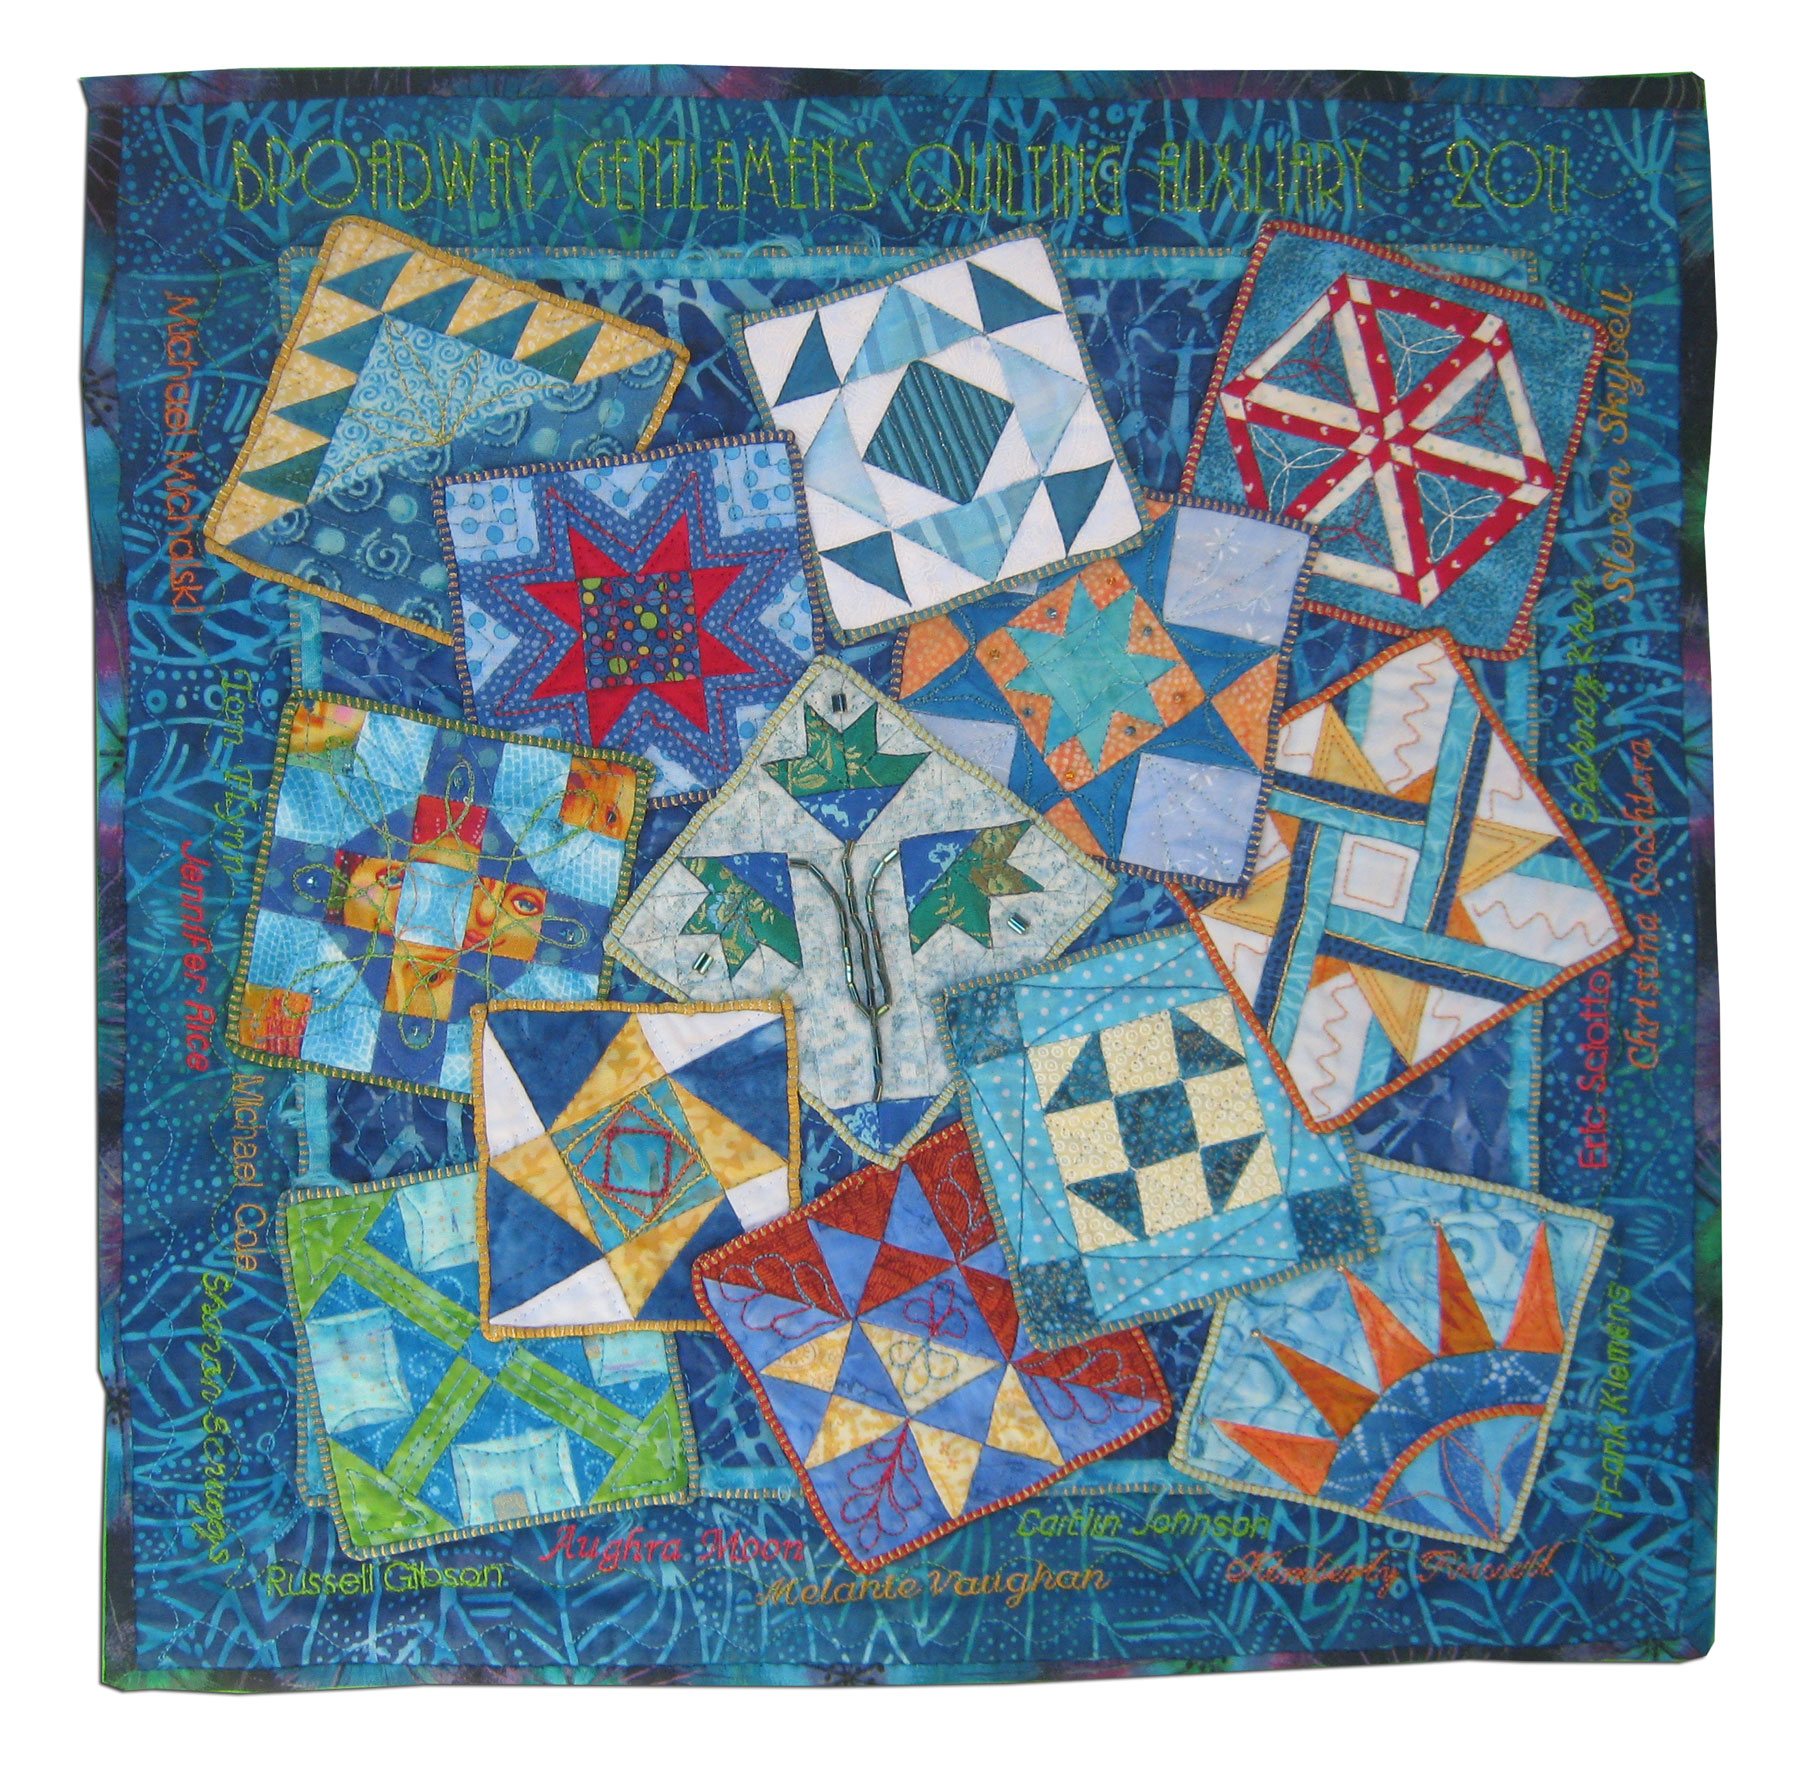 States United 1776 (side B), Top By Broadway Gentlemen's Quilting Auxiliary members: Christina Cocch